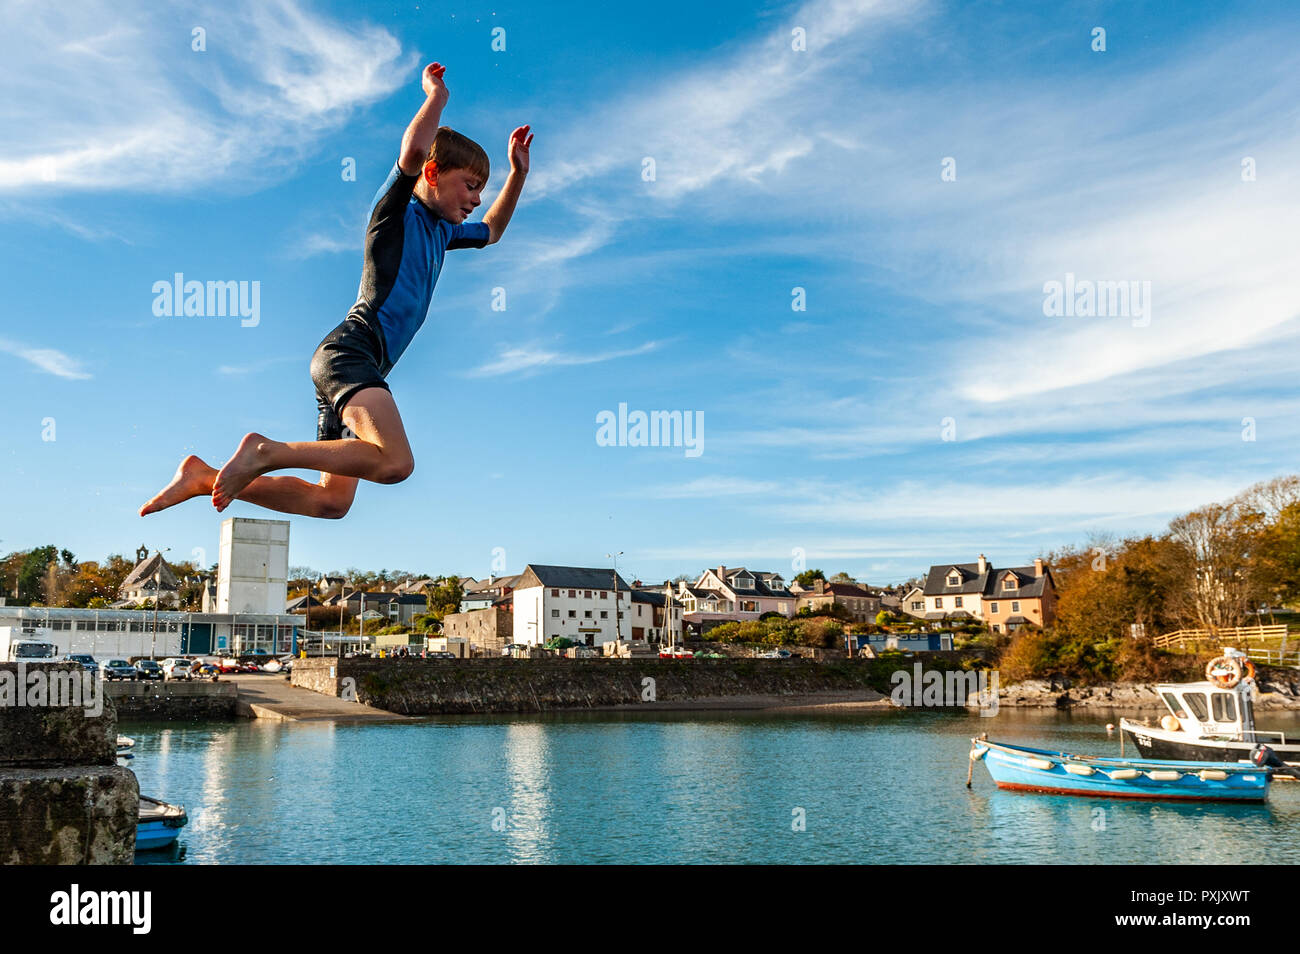 schull-west-cork-ireland-23rd-oct-2018-daniel-copithorne-from-ballydehob-makes-the-most-of-the-unseasonably-warm-weather-by-jumping-into-the-sea-off-schull-pier-sunshine-has-been-the-order-of-the-day-today-with-highs-of-13-15-celsius-in-west-cork-credit-andy-gibsonalamy-live-news-PXJXWT.jpg